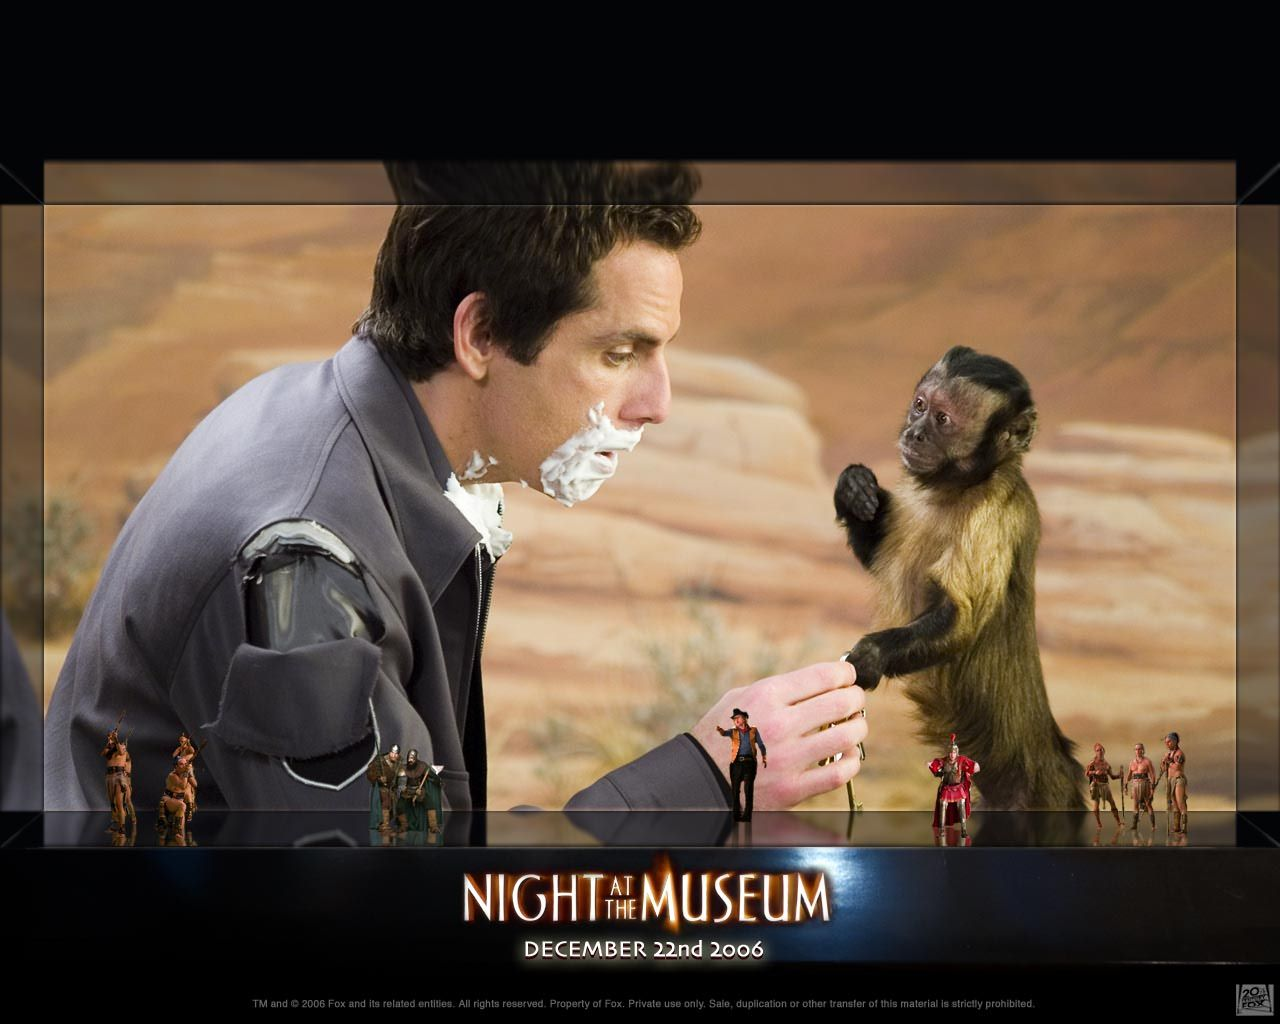 Night at the museum 2 porn 3gp  nude pics